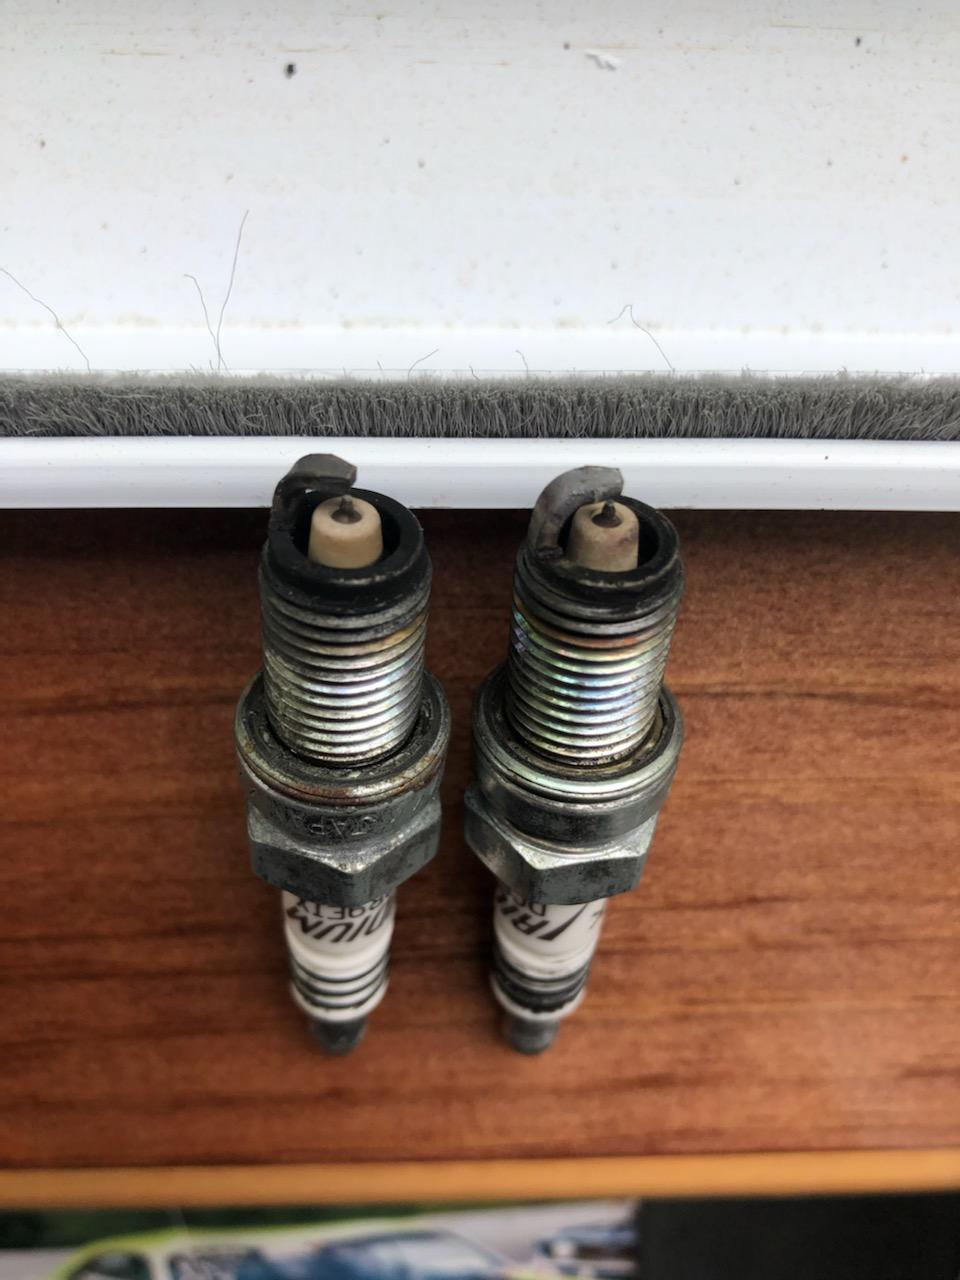 Left plug is the front plug